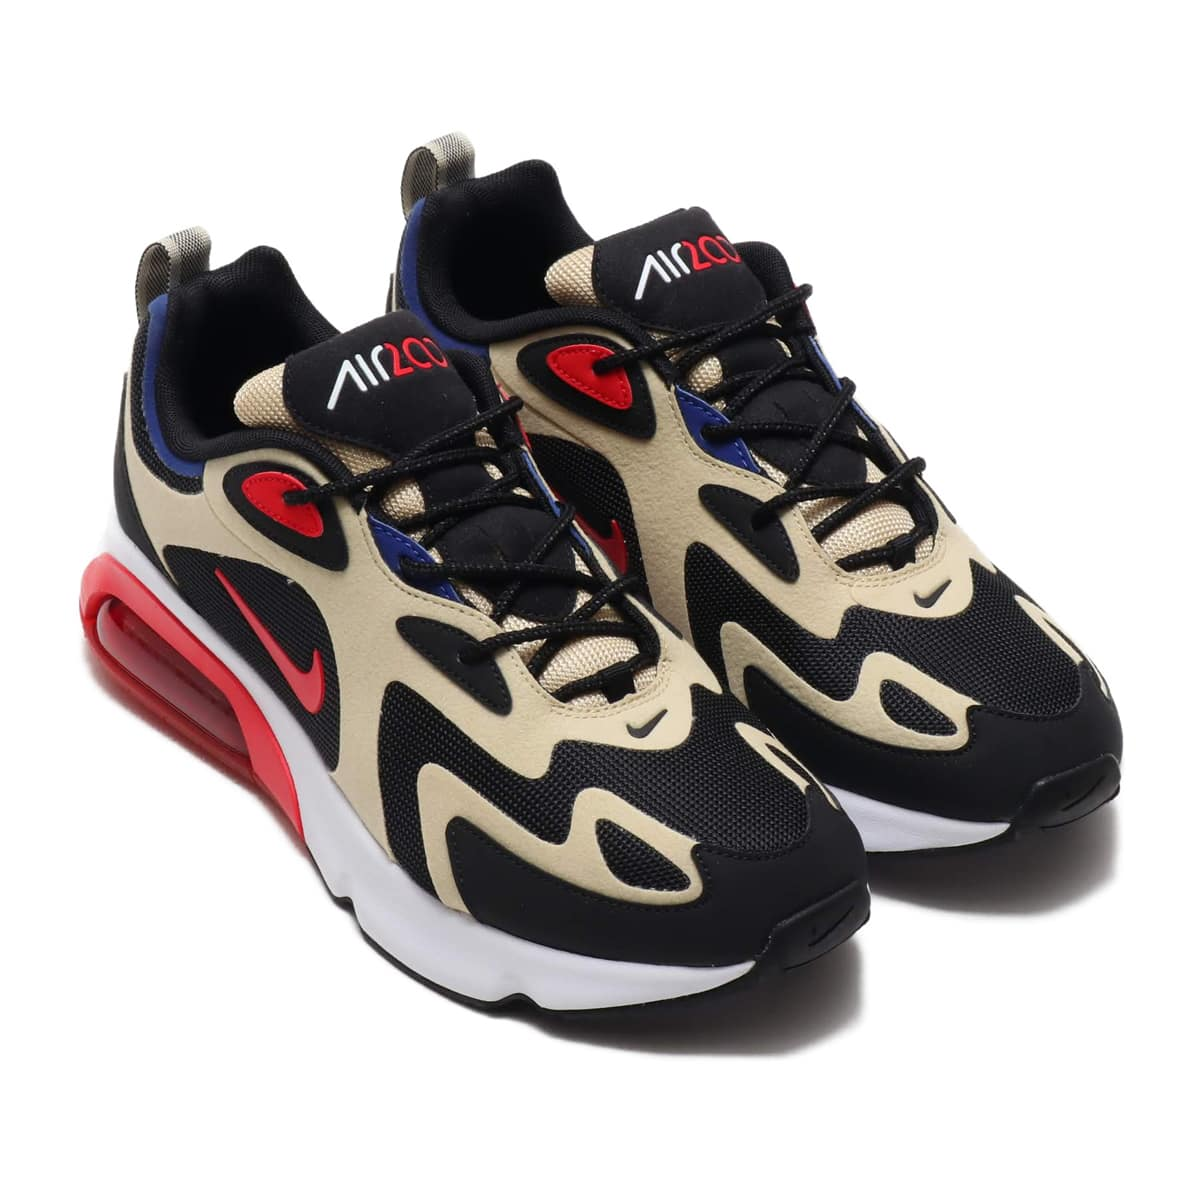 NIKE AIR MAX 200 TEAM GOLD/UNIVERSITY RED-BLACK-WHITE 19FA-S_photo_large